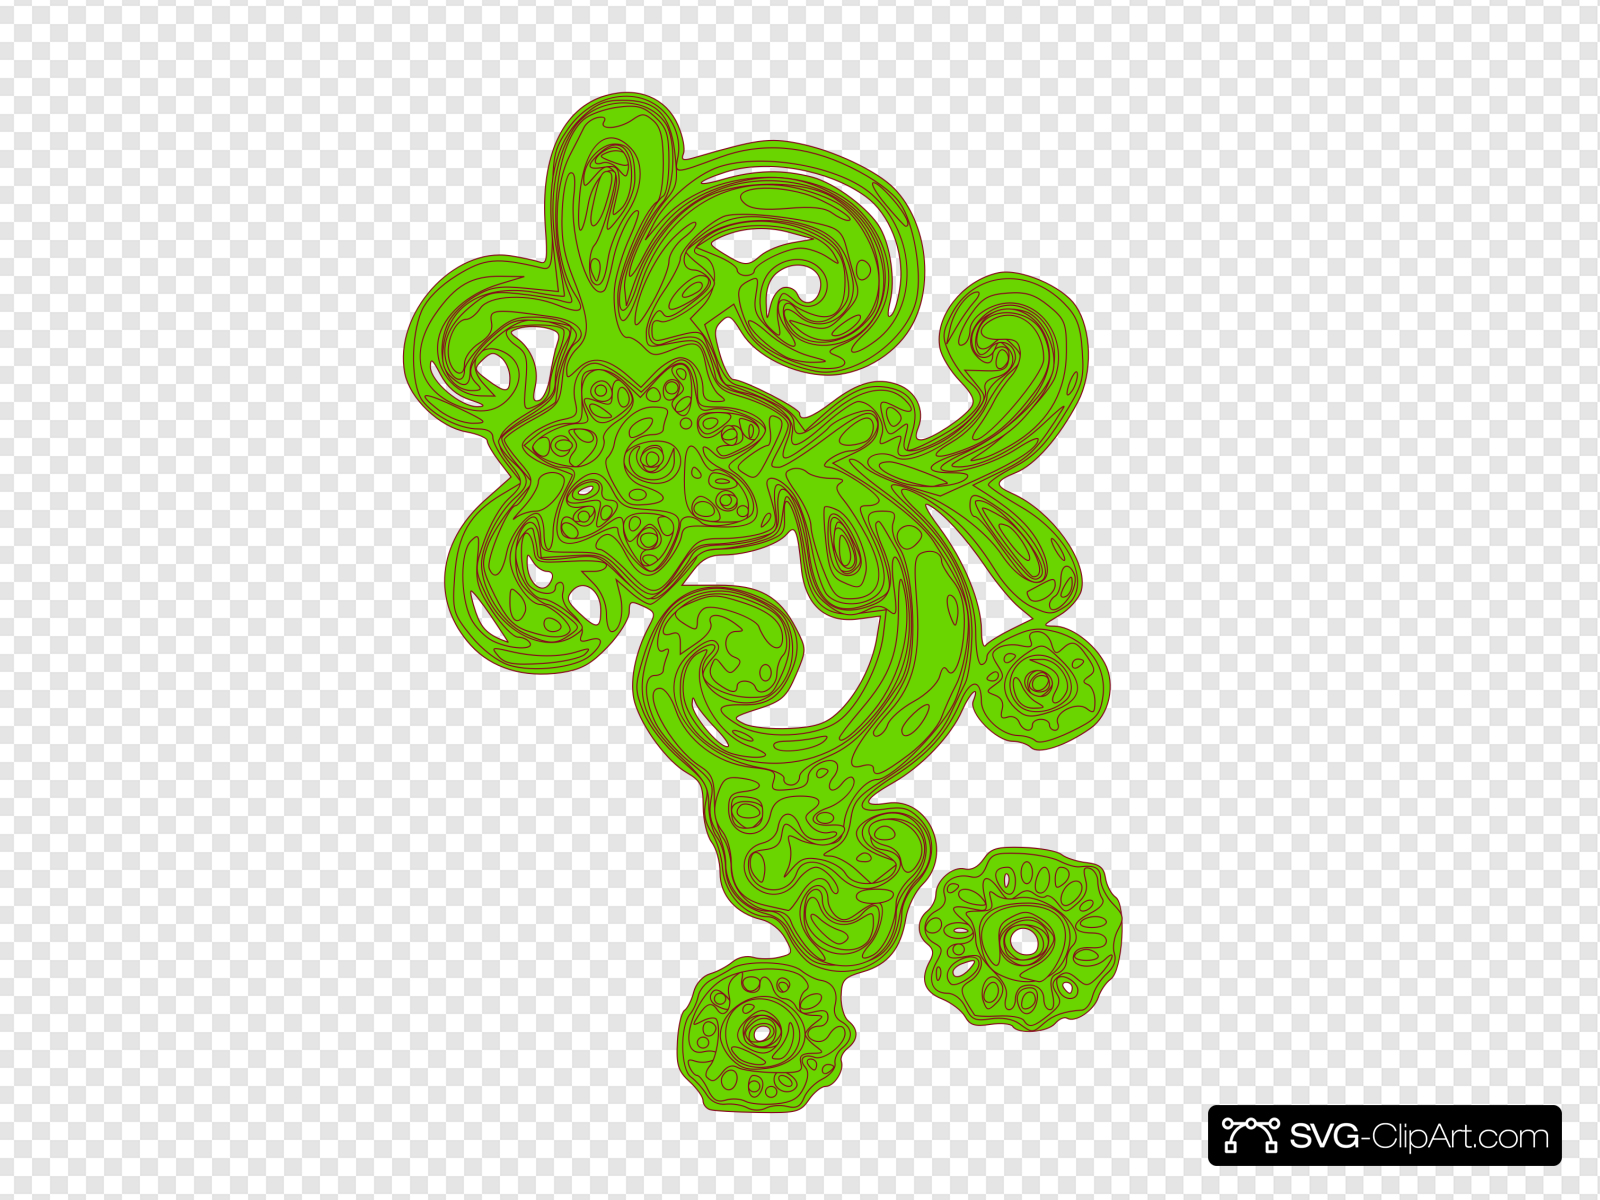 Green decorative clipart vector royalty free Green Decorative Clip art, Icon and SVG - SVG Clipart vector royalty free